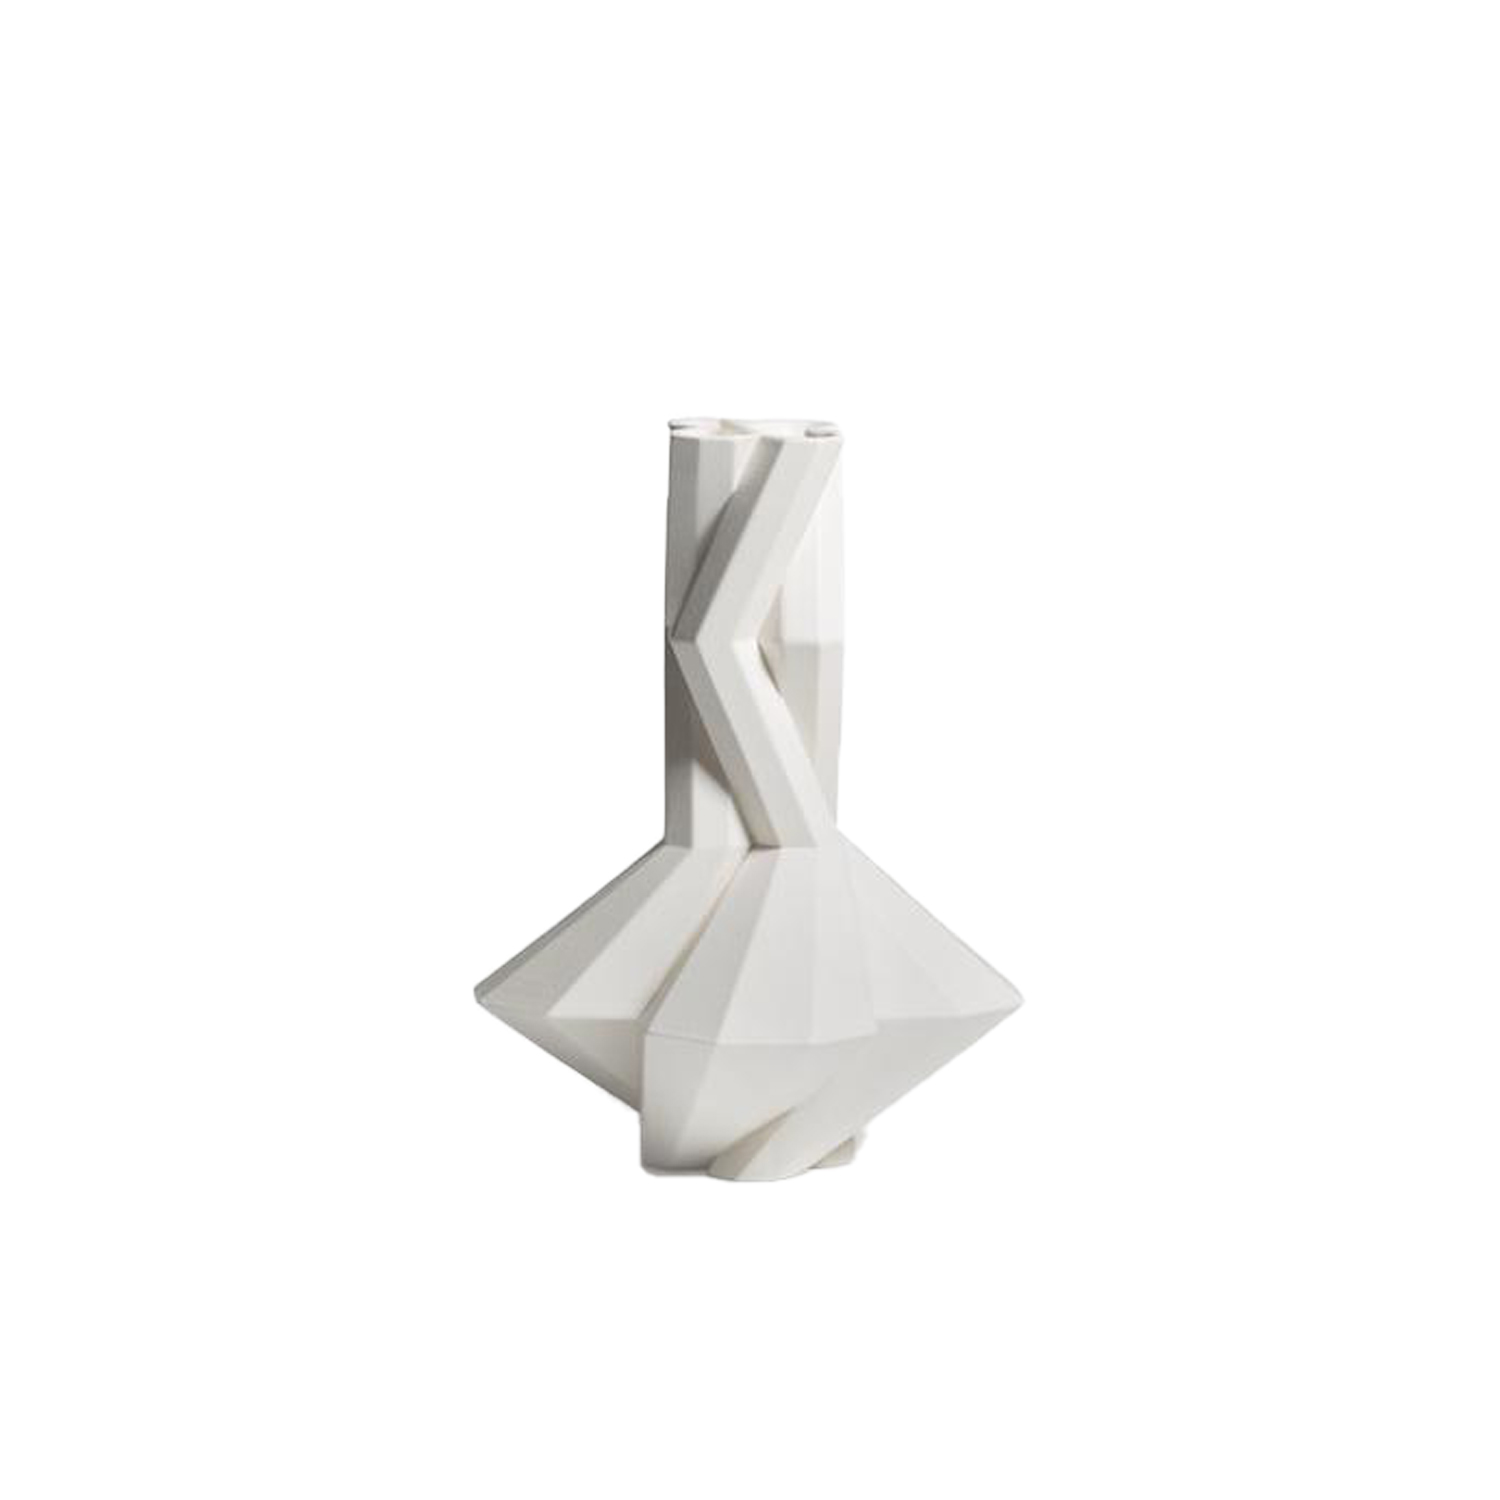 Fortress Cupola White - Designer Lara Bohinc explores the marriage of ancient and futuristic form in the new Fortress Vase range, which has created a more complex geometric and modern structure from the original inspiration of the octagonal towers at the Diocletian Palace in Croatia. The resulting hexagonal blocks interlock and embrace to allow the play of light and shade on the many surfaces and angles. There are four Fortress shapes: the larger Column and Castle (45cm height), the Pillar (30cm height) and the Tower vase (37cm height). These are hand made from ceramic in a small Italian artisanal workshop and come in three finishes: dark gold, bronze and speckled white.  | Matter of Stuff